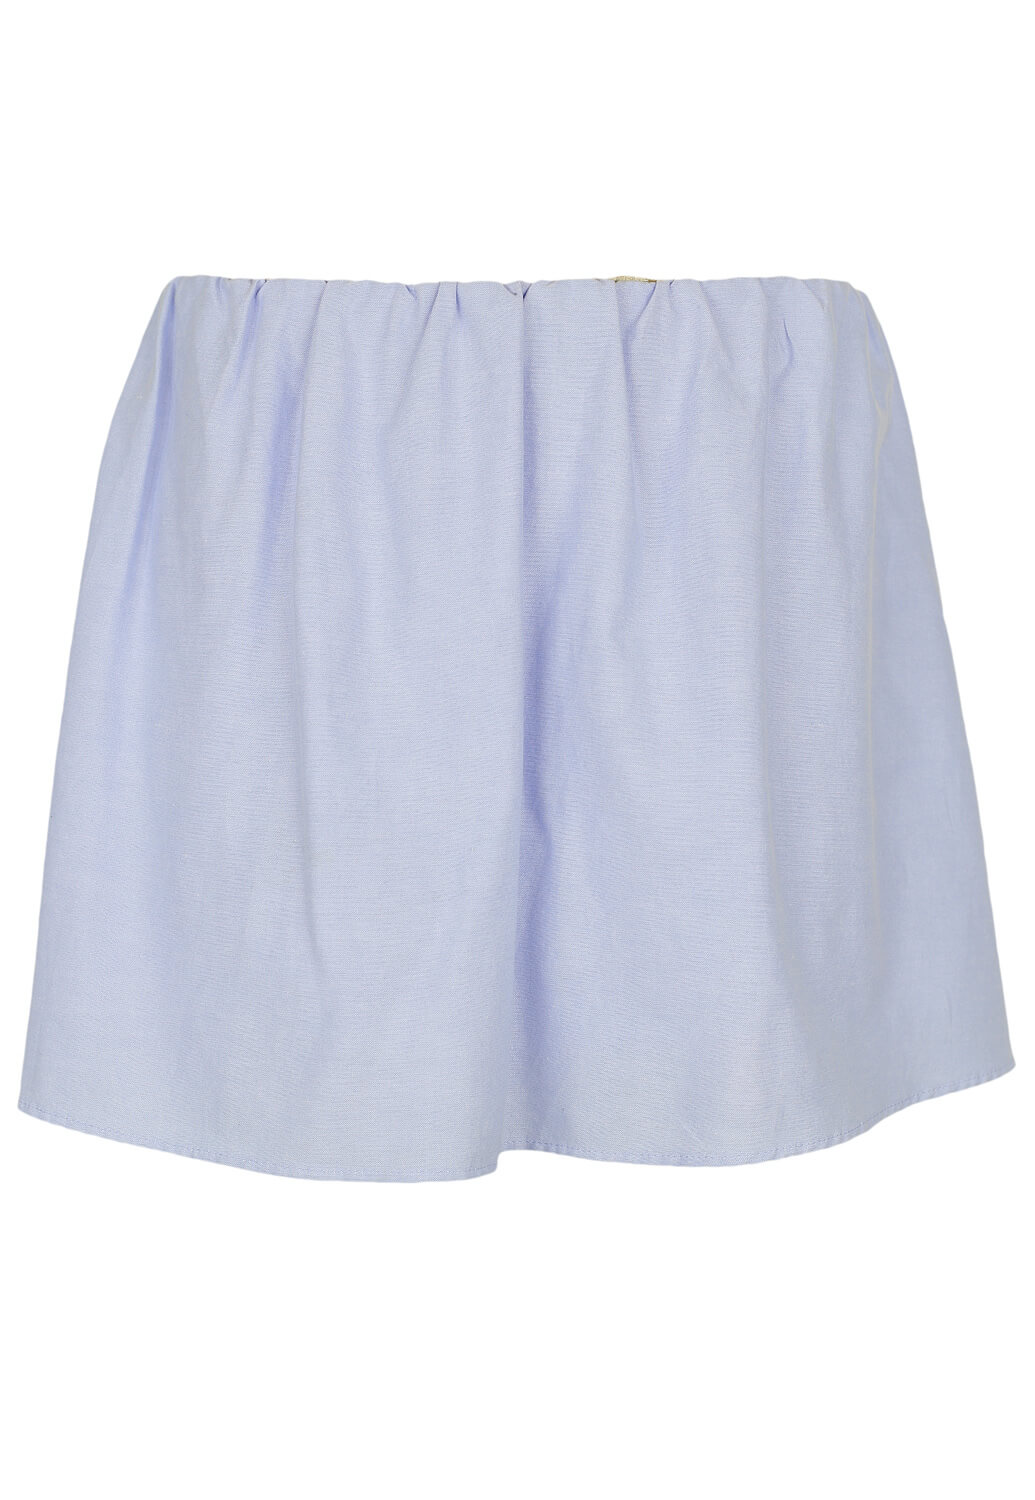 Pantaloni scurti ZARA Enna Light Blue